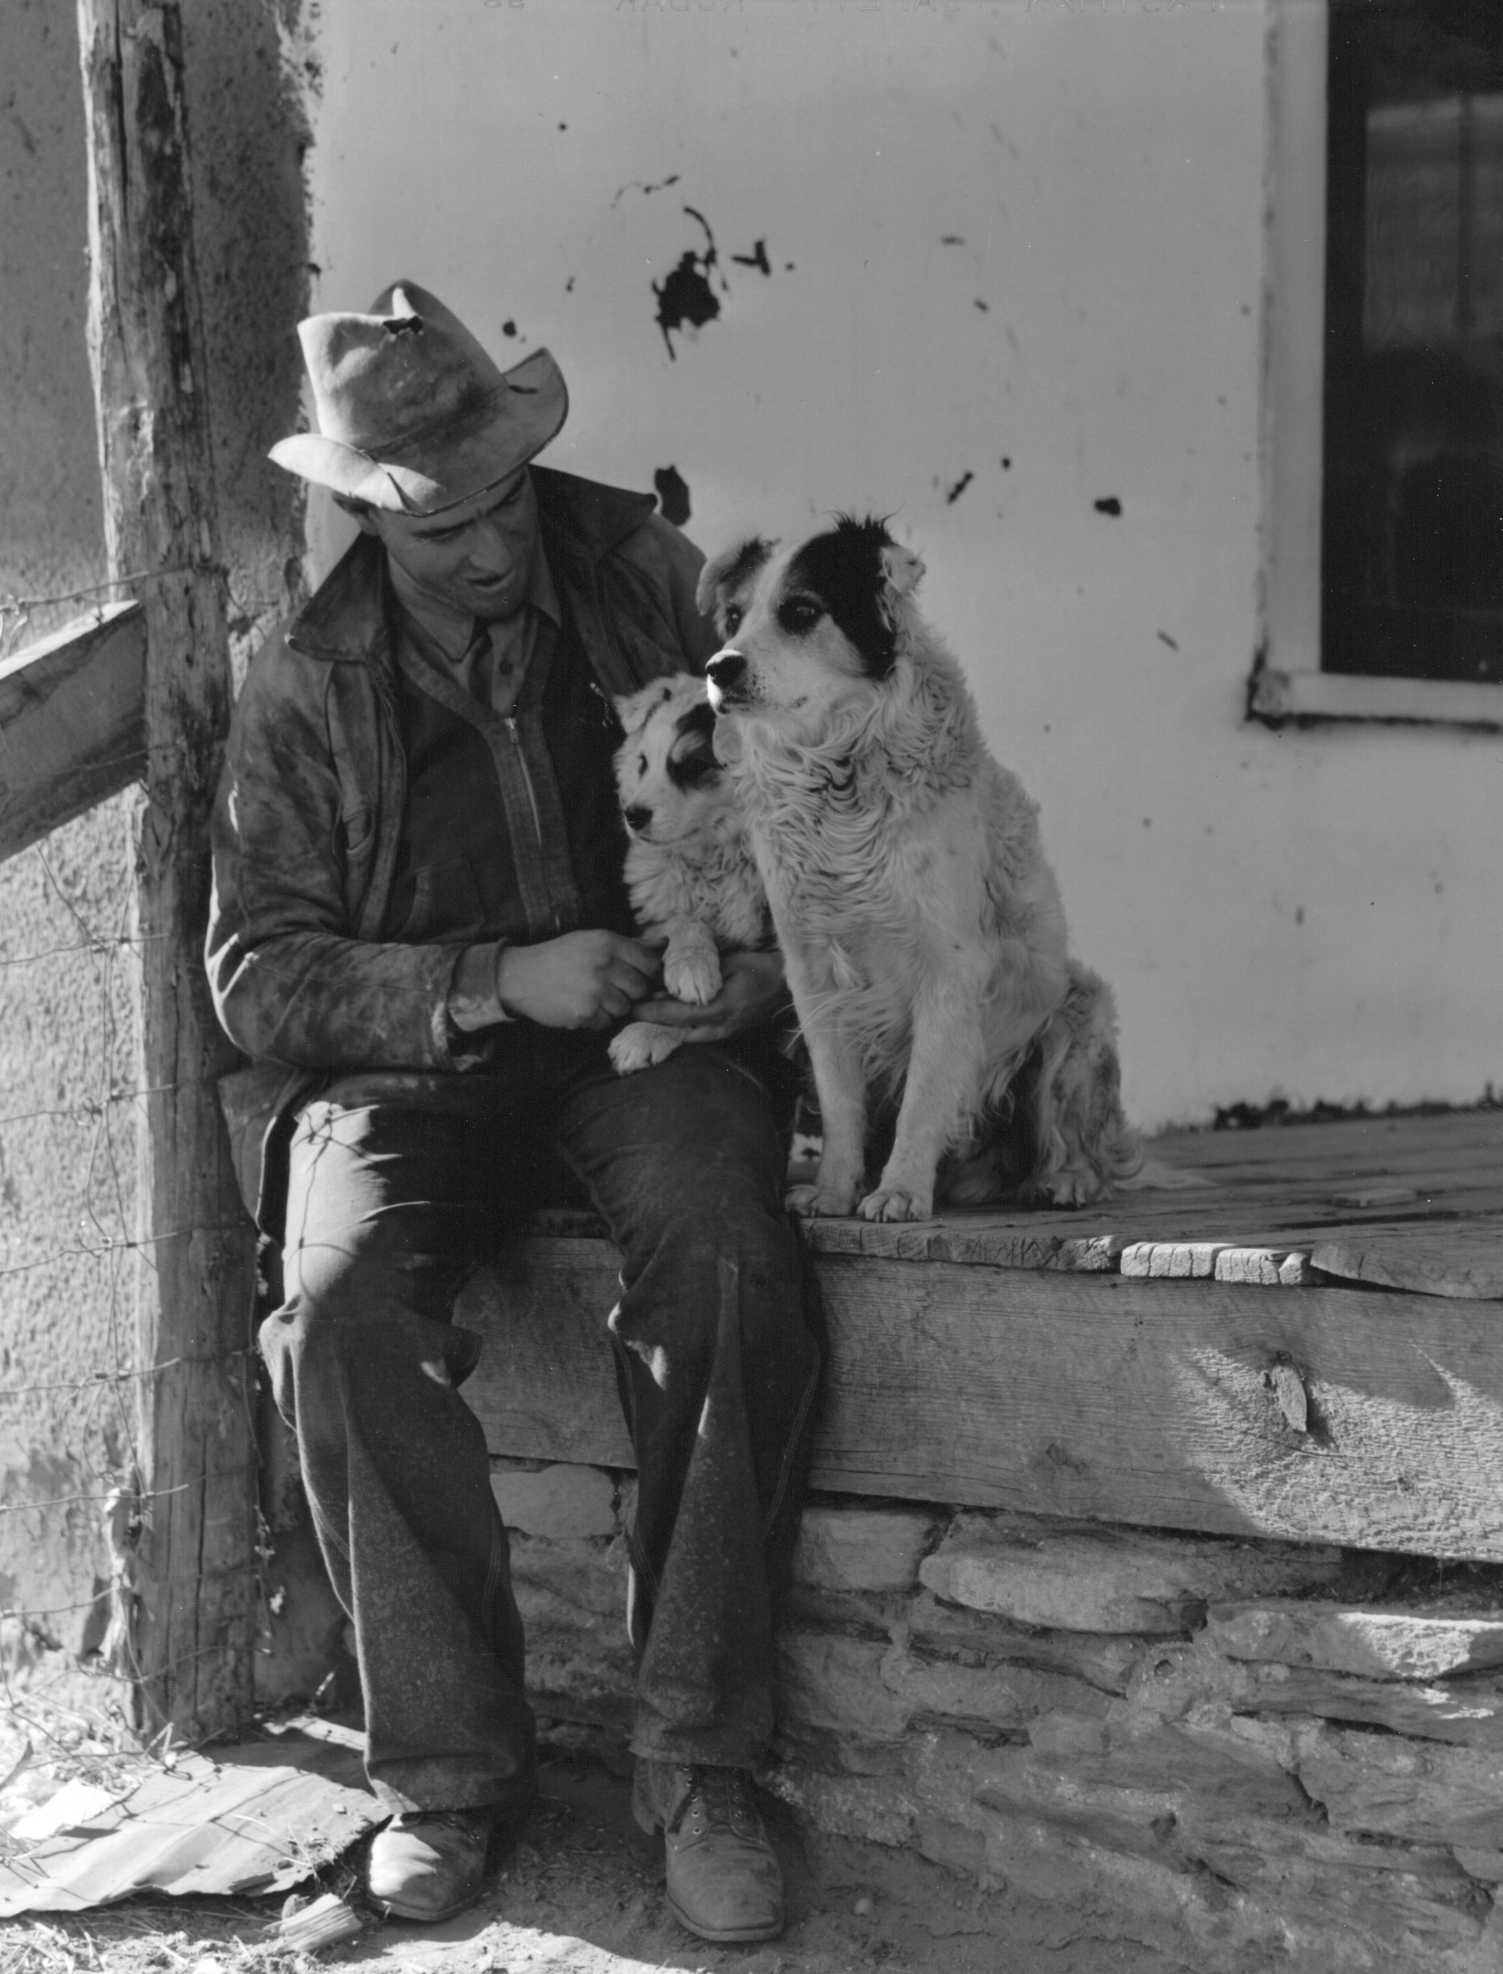 An Anglo rancher, Mora (vicinity), New Mexico. John Collier, January 1943.